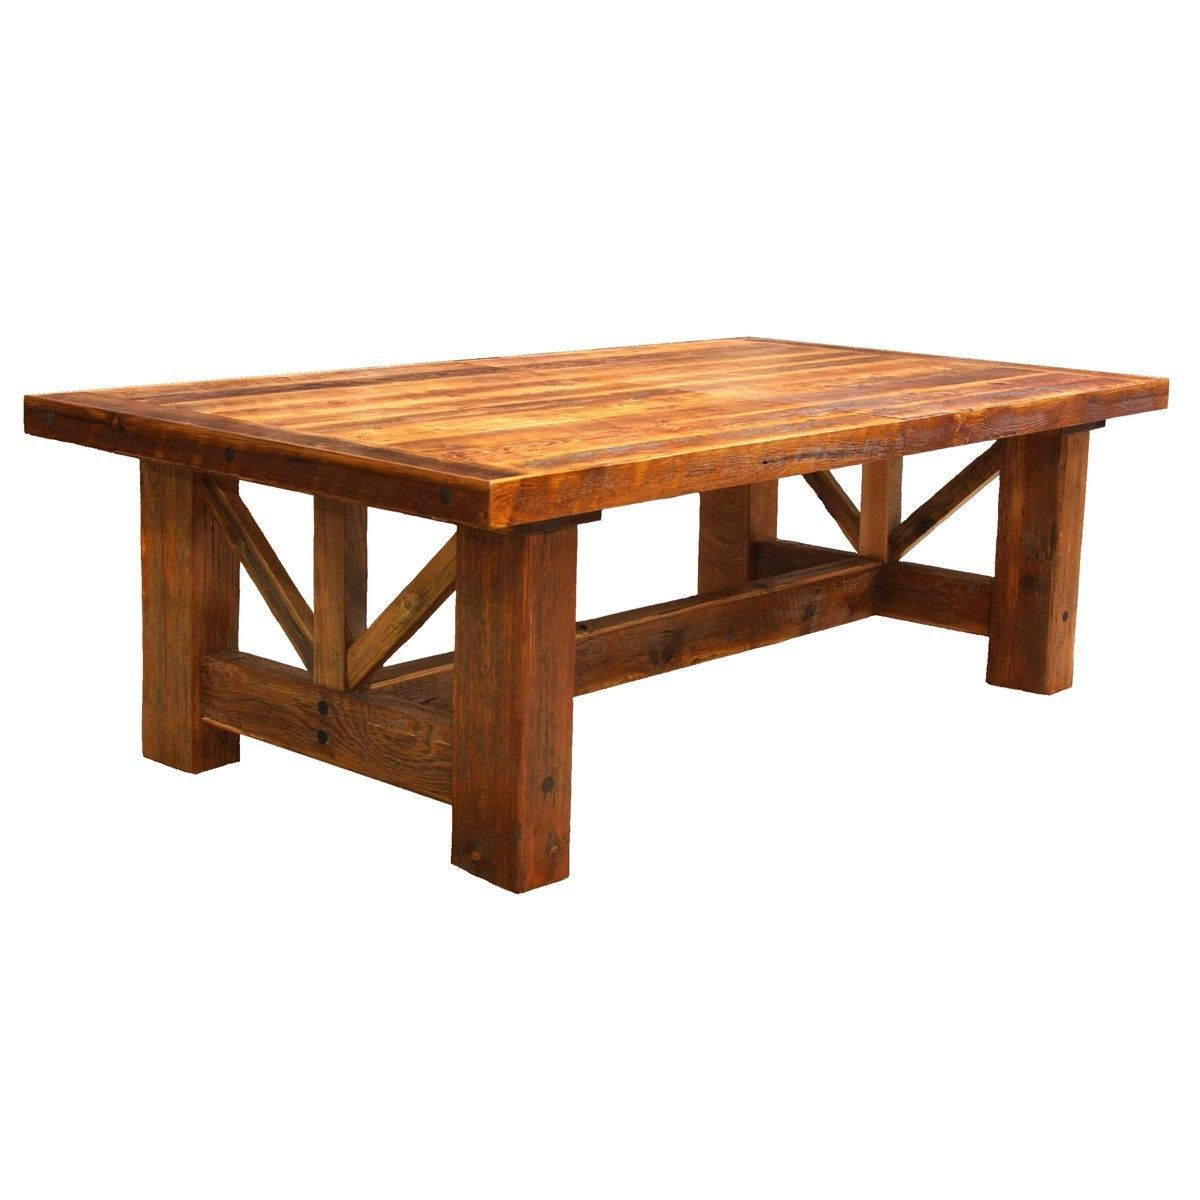 Log Kitchen Table: Details About Western Trestle Table